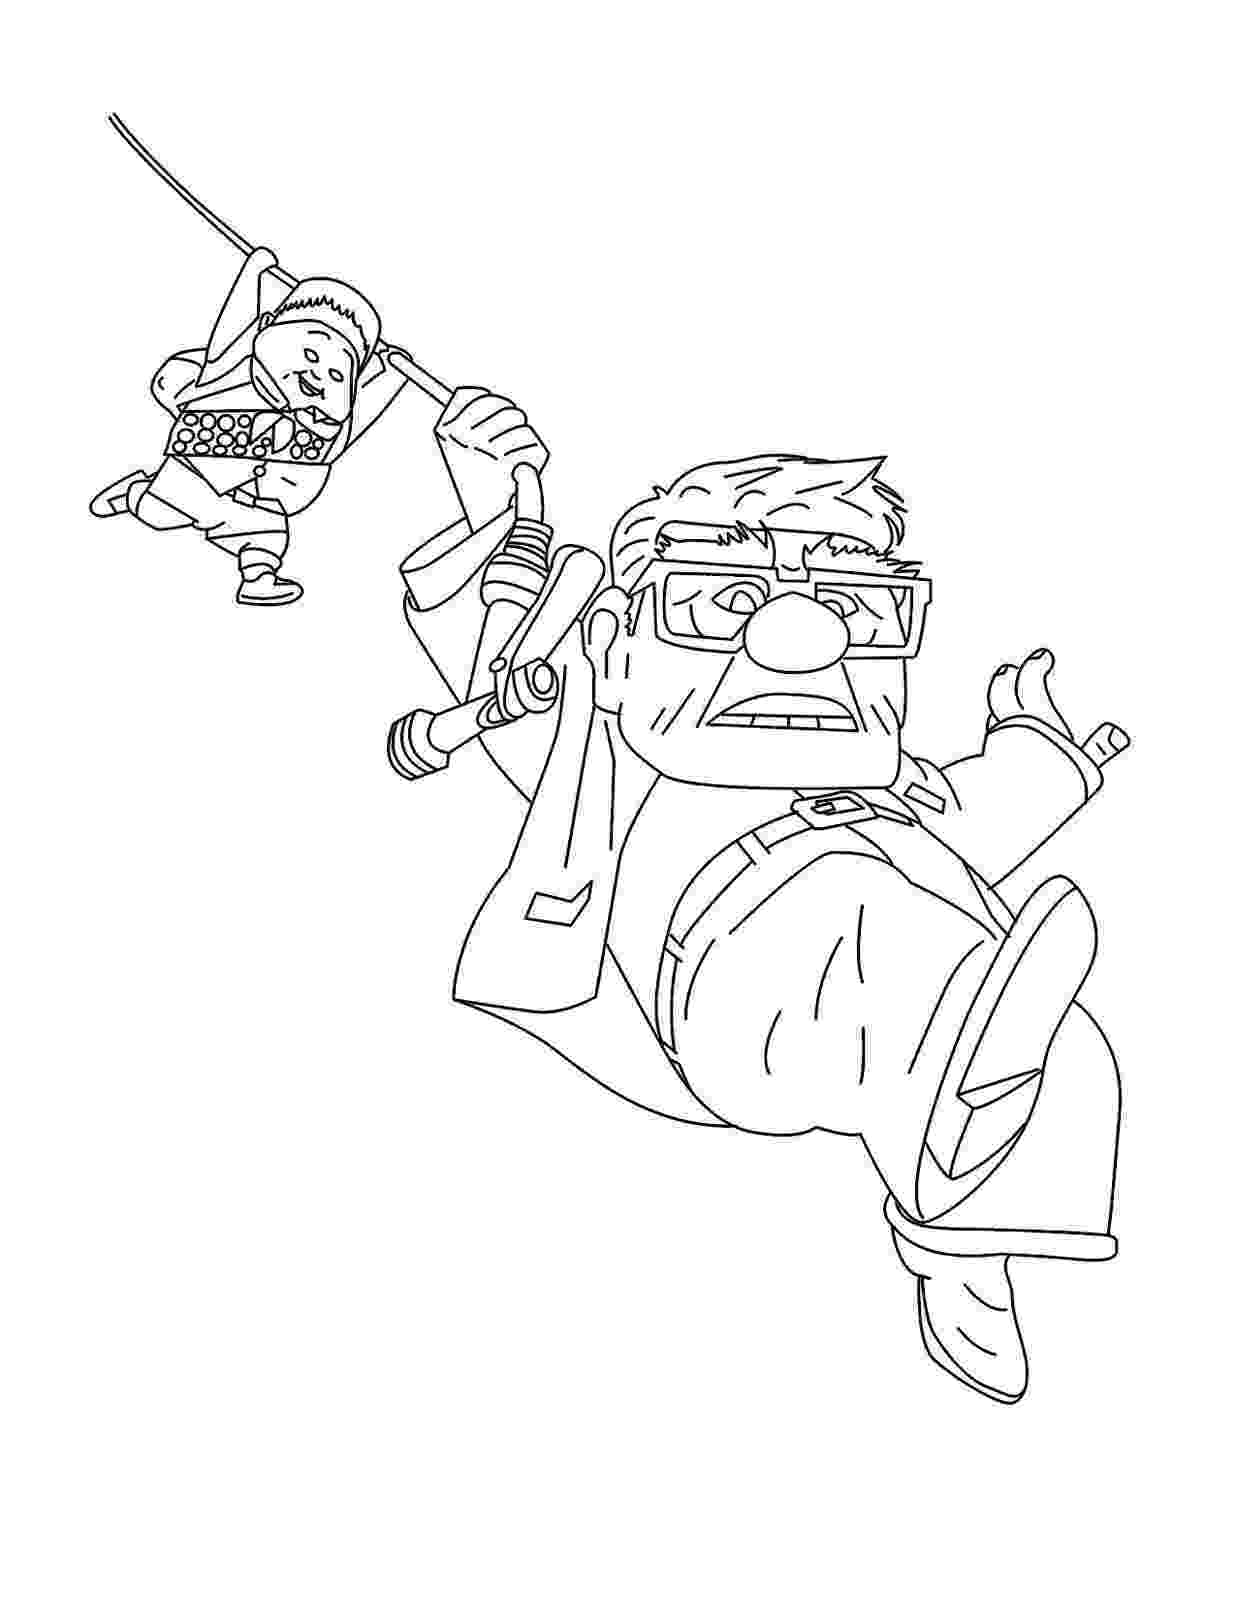 up coloring pages up coloring pages to download and print for free coloring pages up